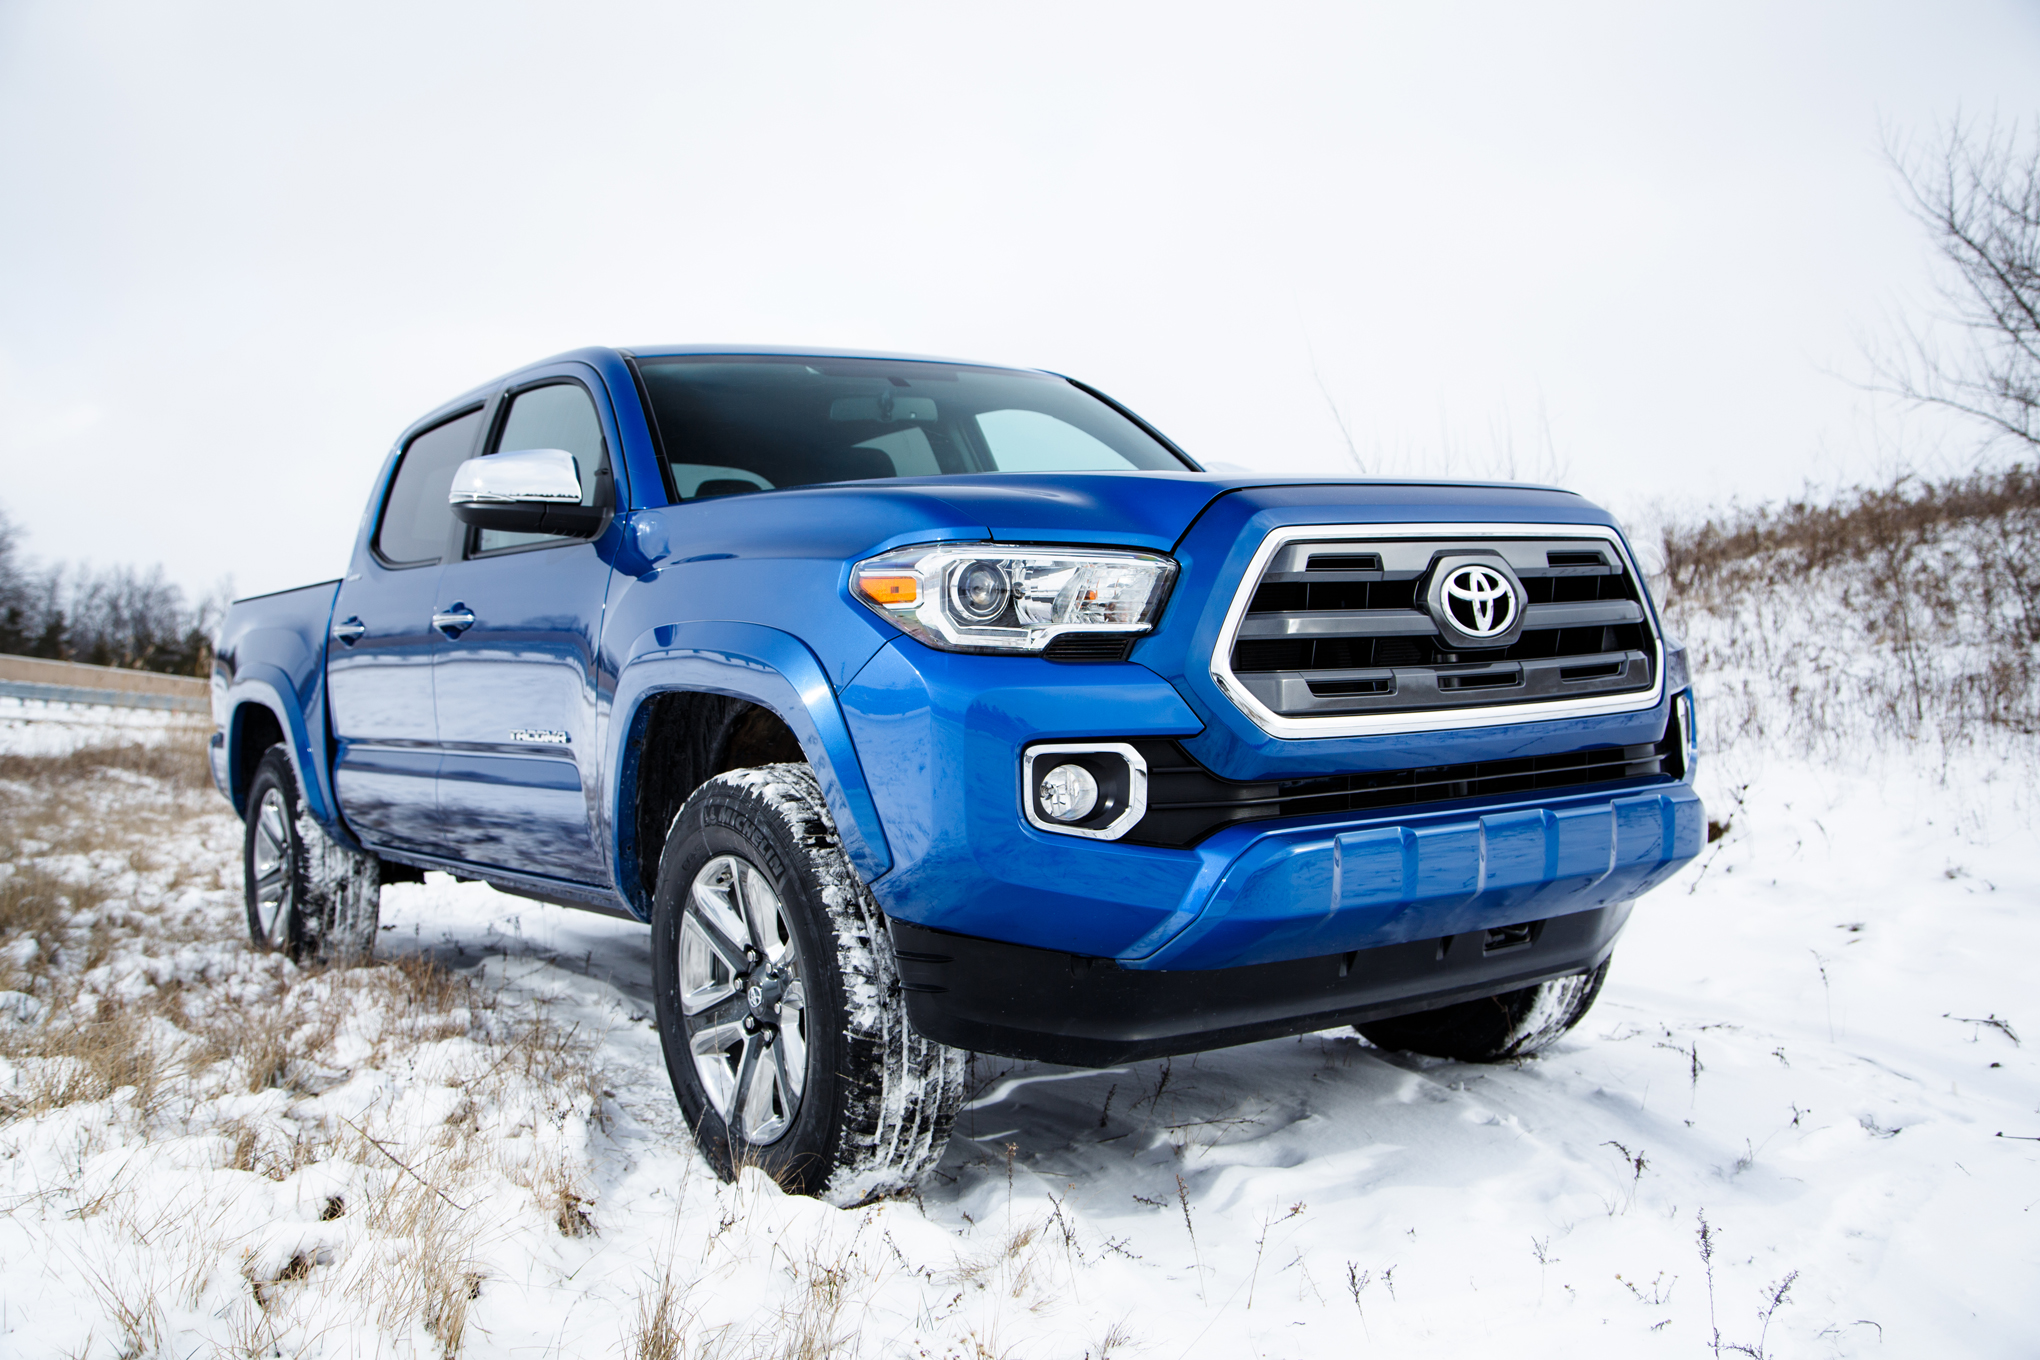 See it Here First: The 2016 Toyota Tacoma